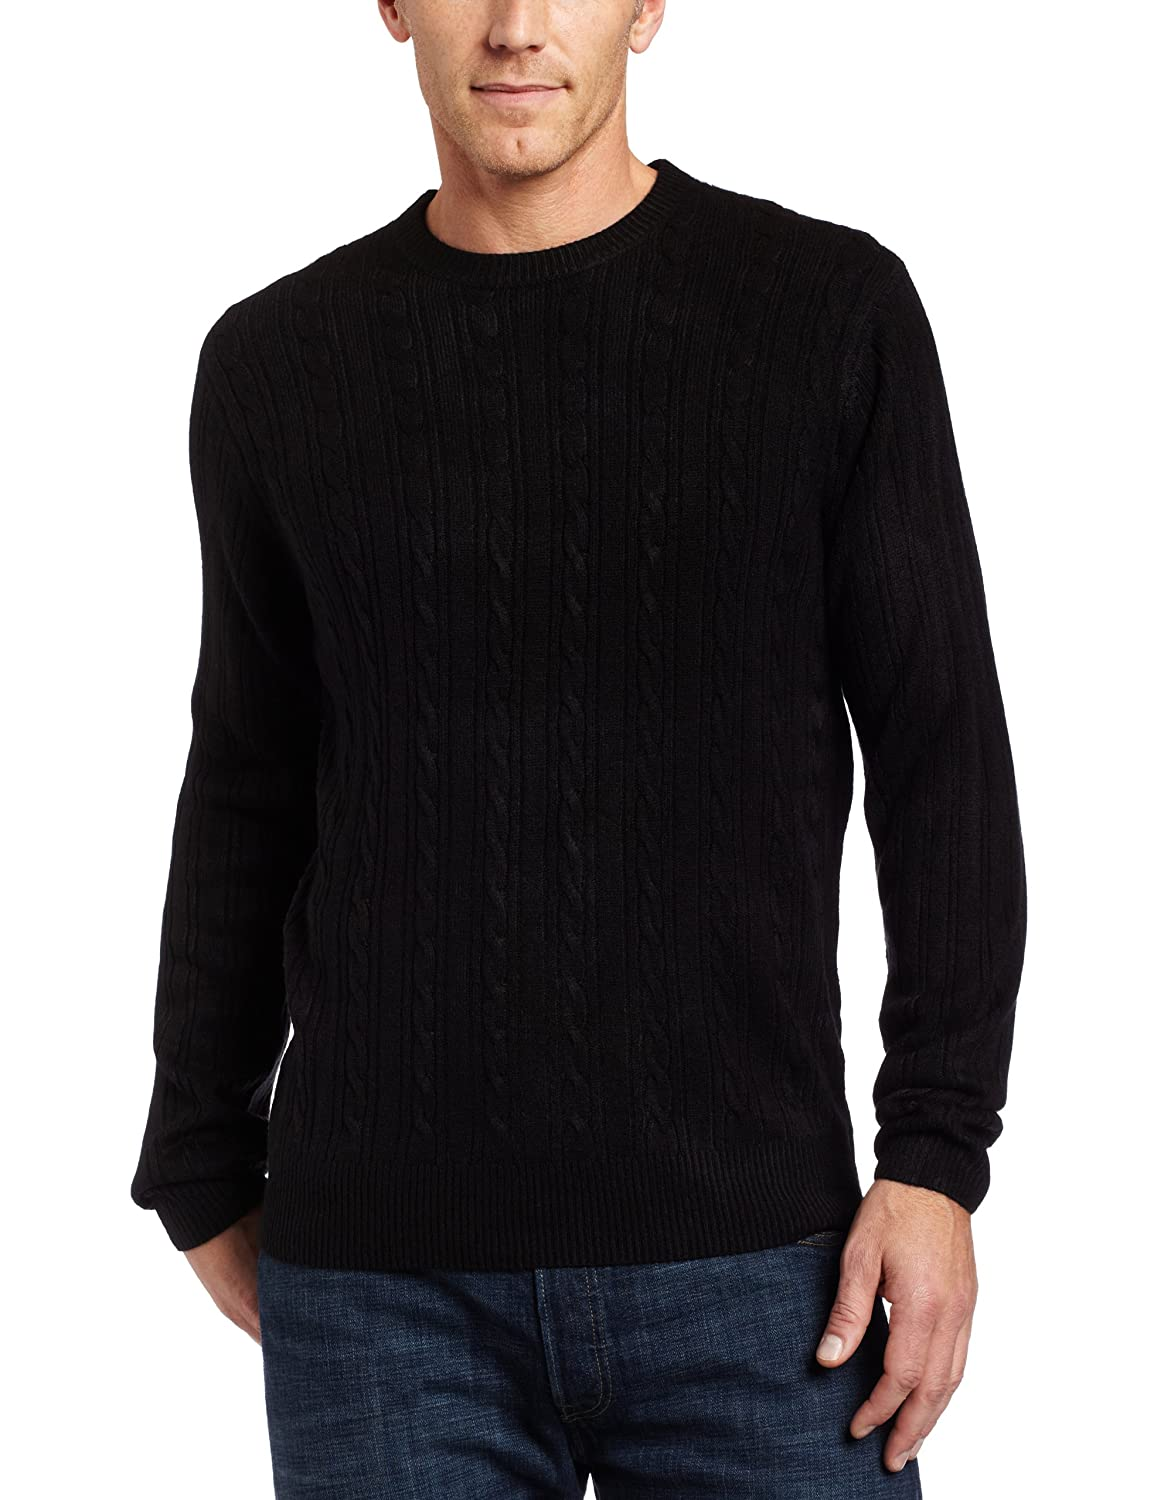 Geoffrey Beene Mens Soft Acrylic Crew Sweater, Black, XX-Large